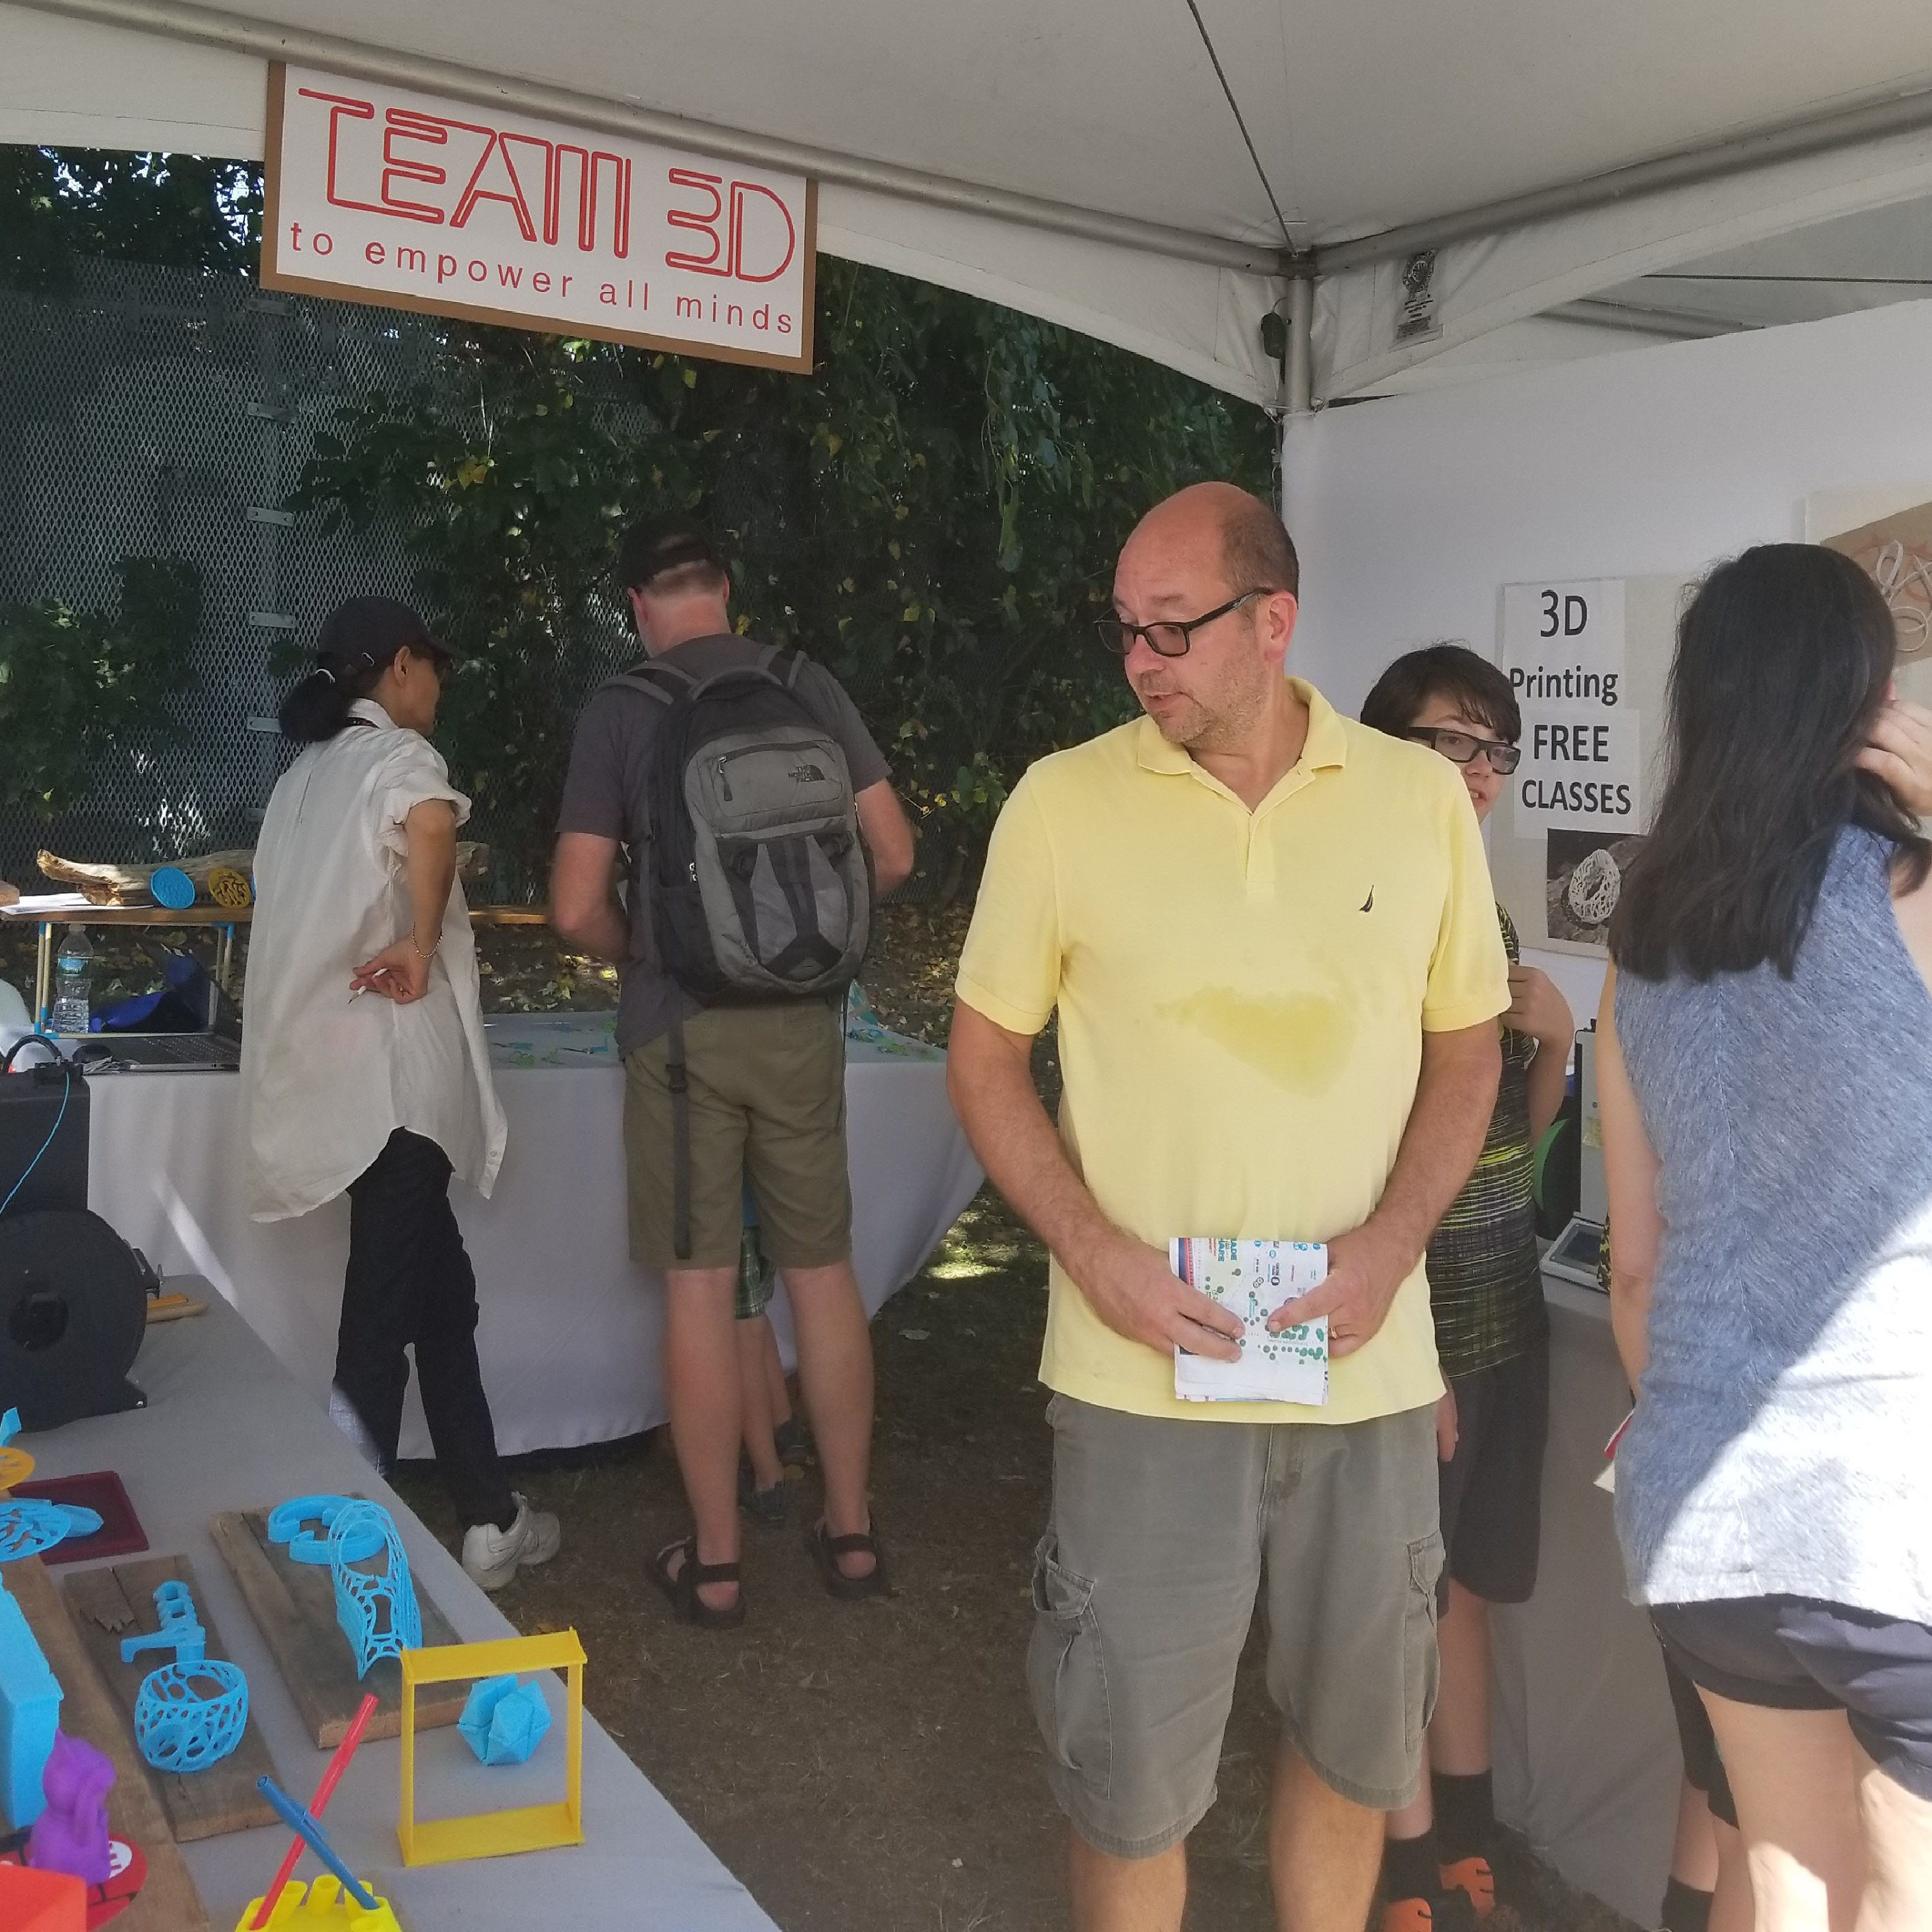 Take a virtual tour of TEAM 3D STUDIO booth at 2017 MAKER FAIRE New York City